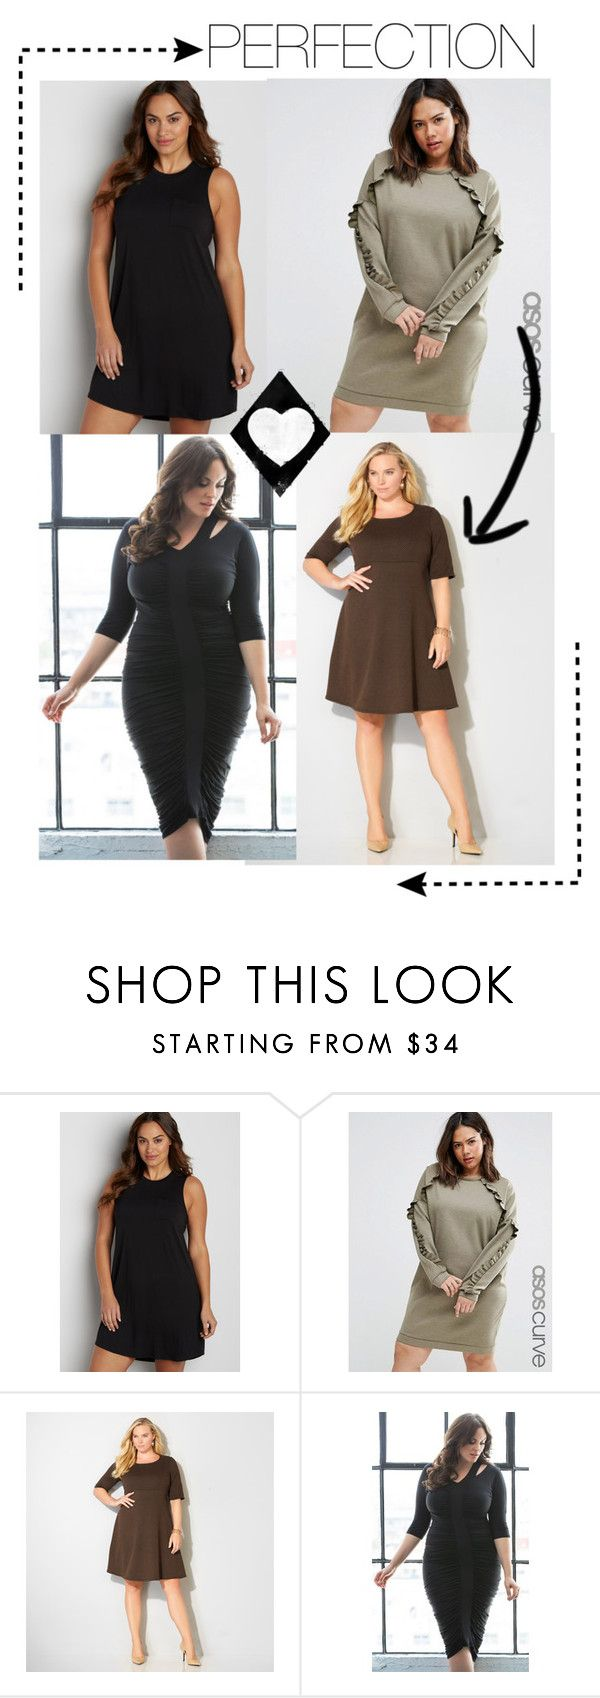 """""""Beautiful Plus Size Dresses"""" by valentina-an on Polyvore featuring moda, maurices, ASOS Curve, Avenue, Kiyonna y plus size dresses"""